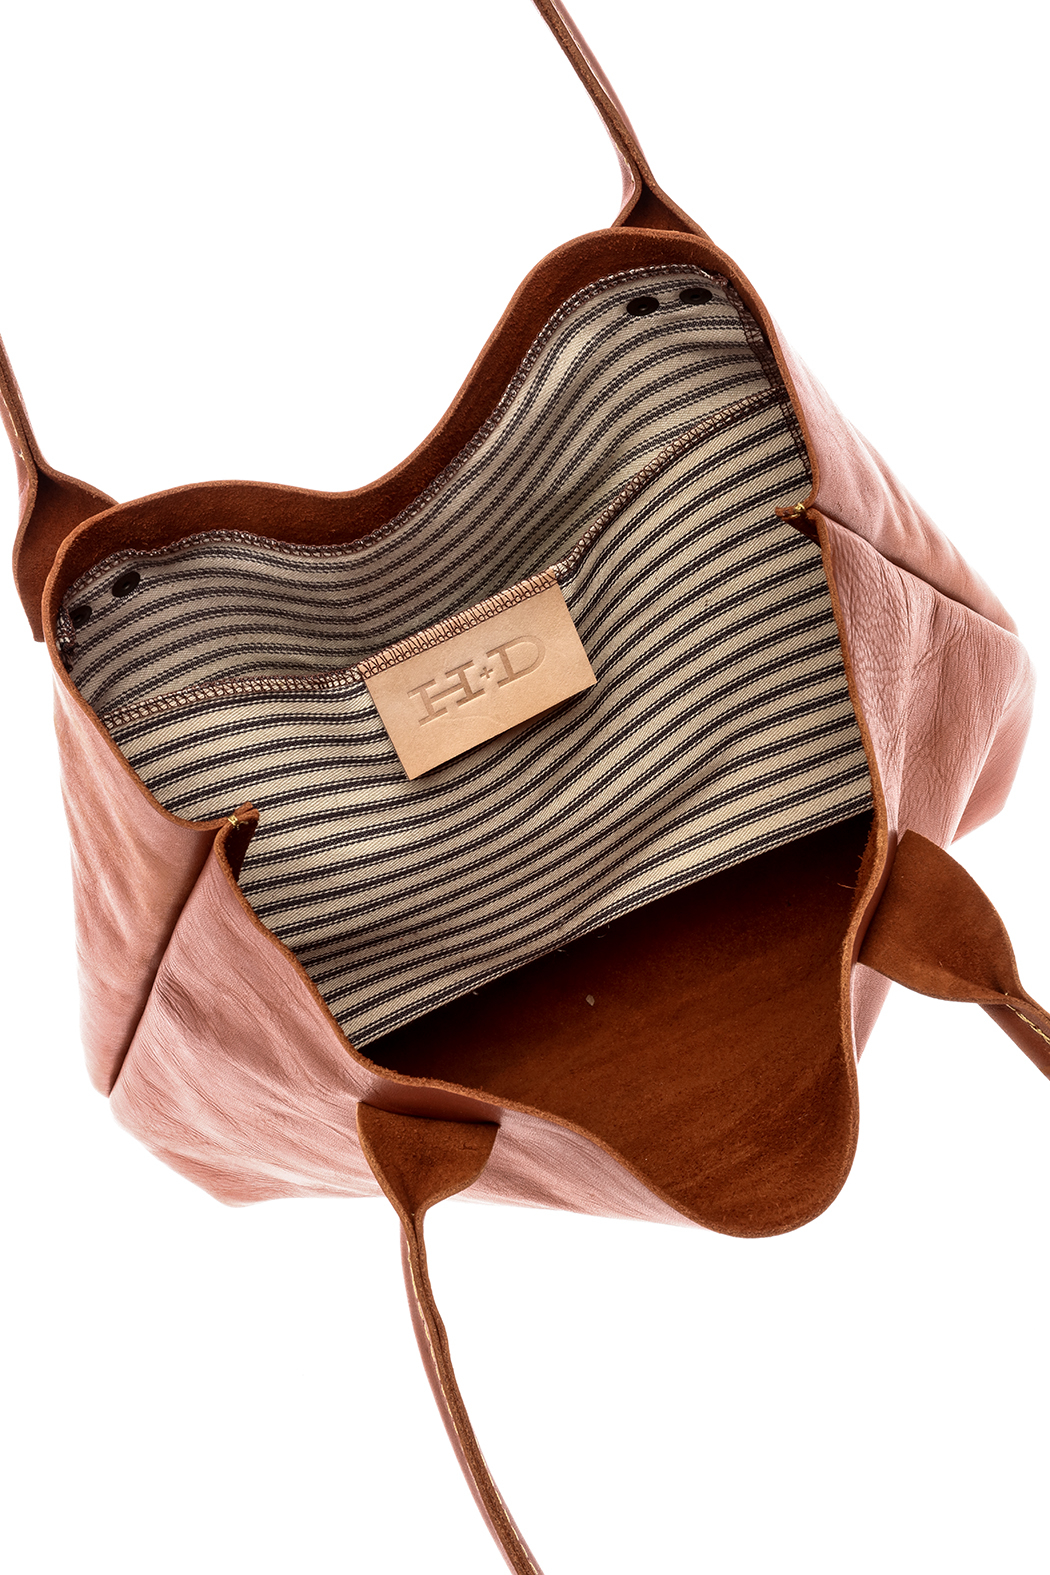 Hawks and Doves Tan Porter Tote - Front Full Image